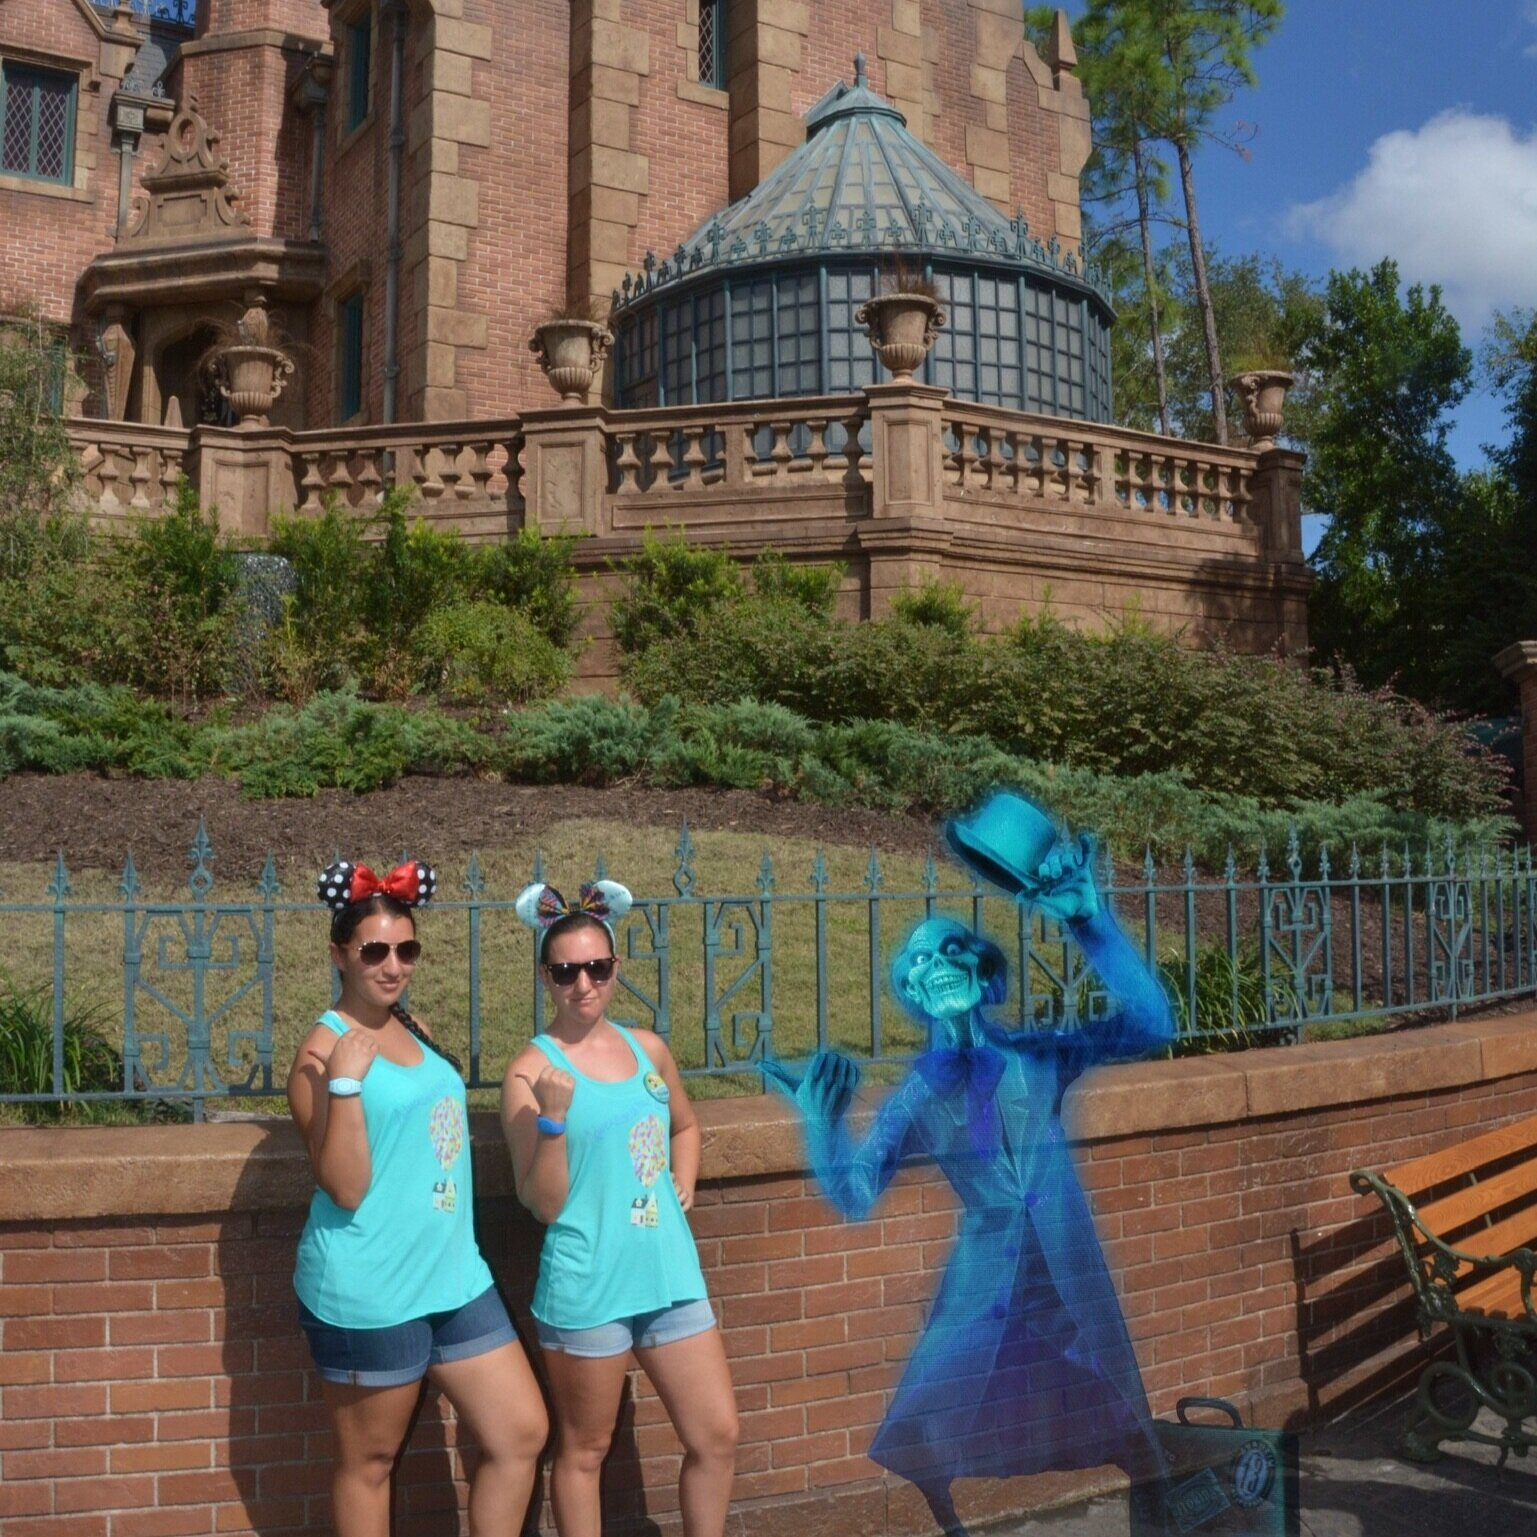 Beware of Hitchhiking Ghosts at The Haunted Mansion! (Disney's PhotoPass)